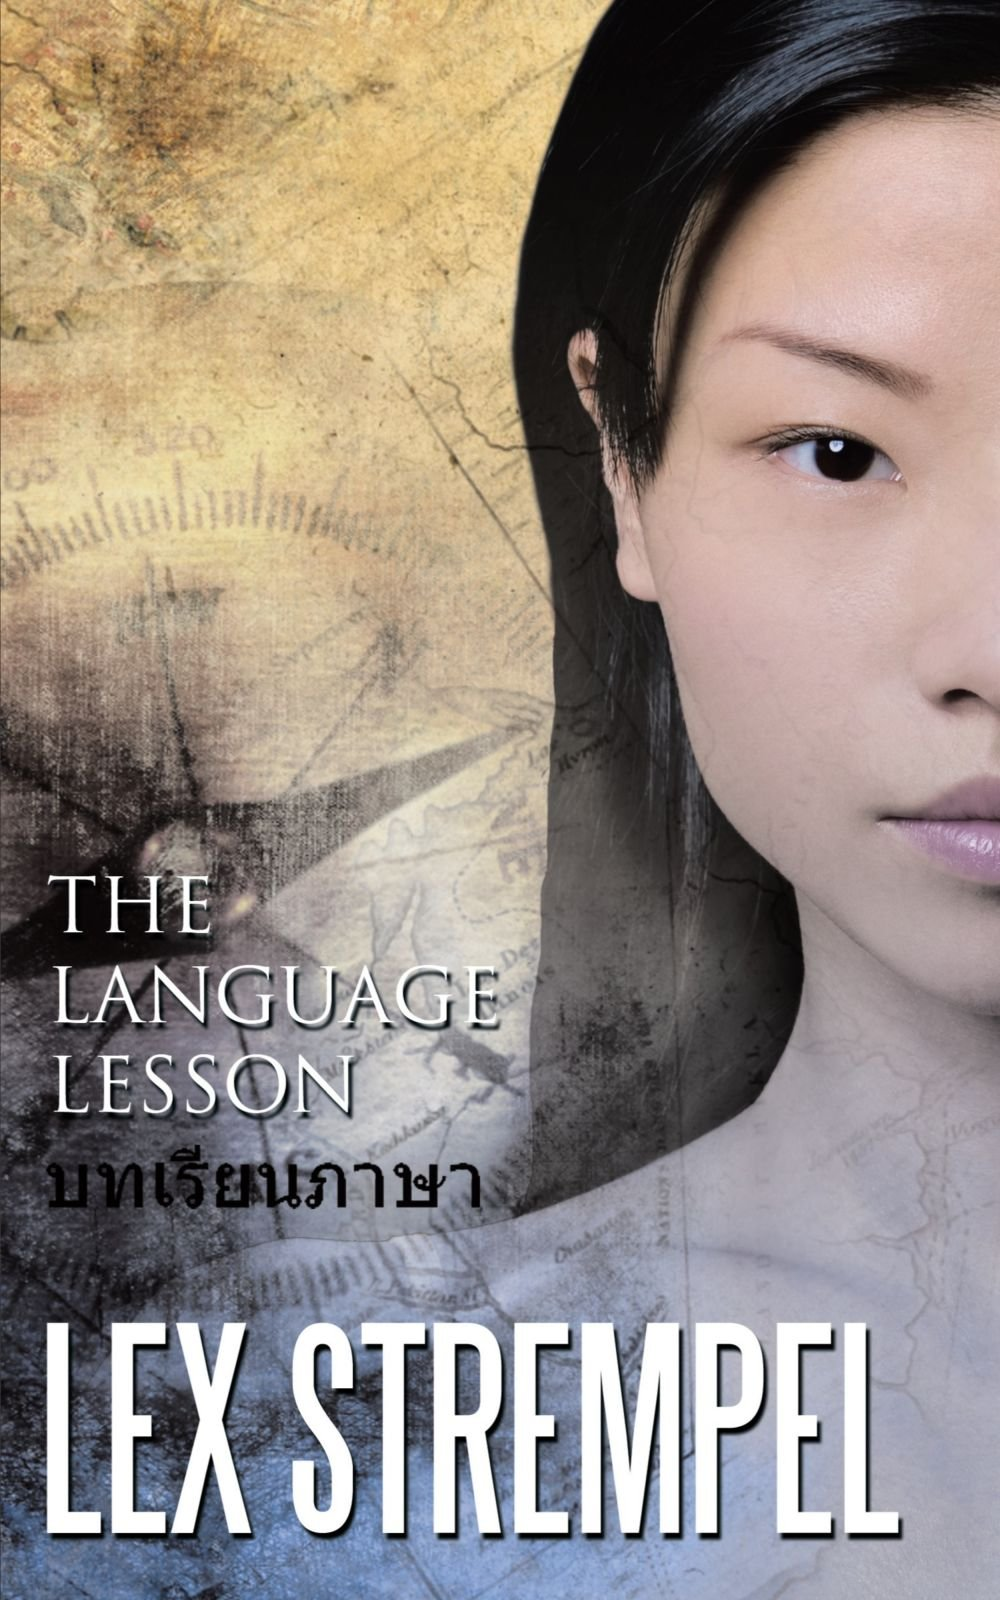 The Language Lesson by AuthorHouse